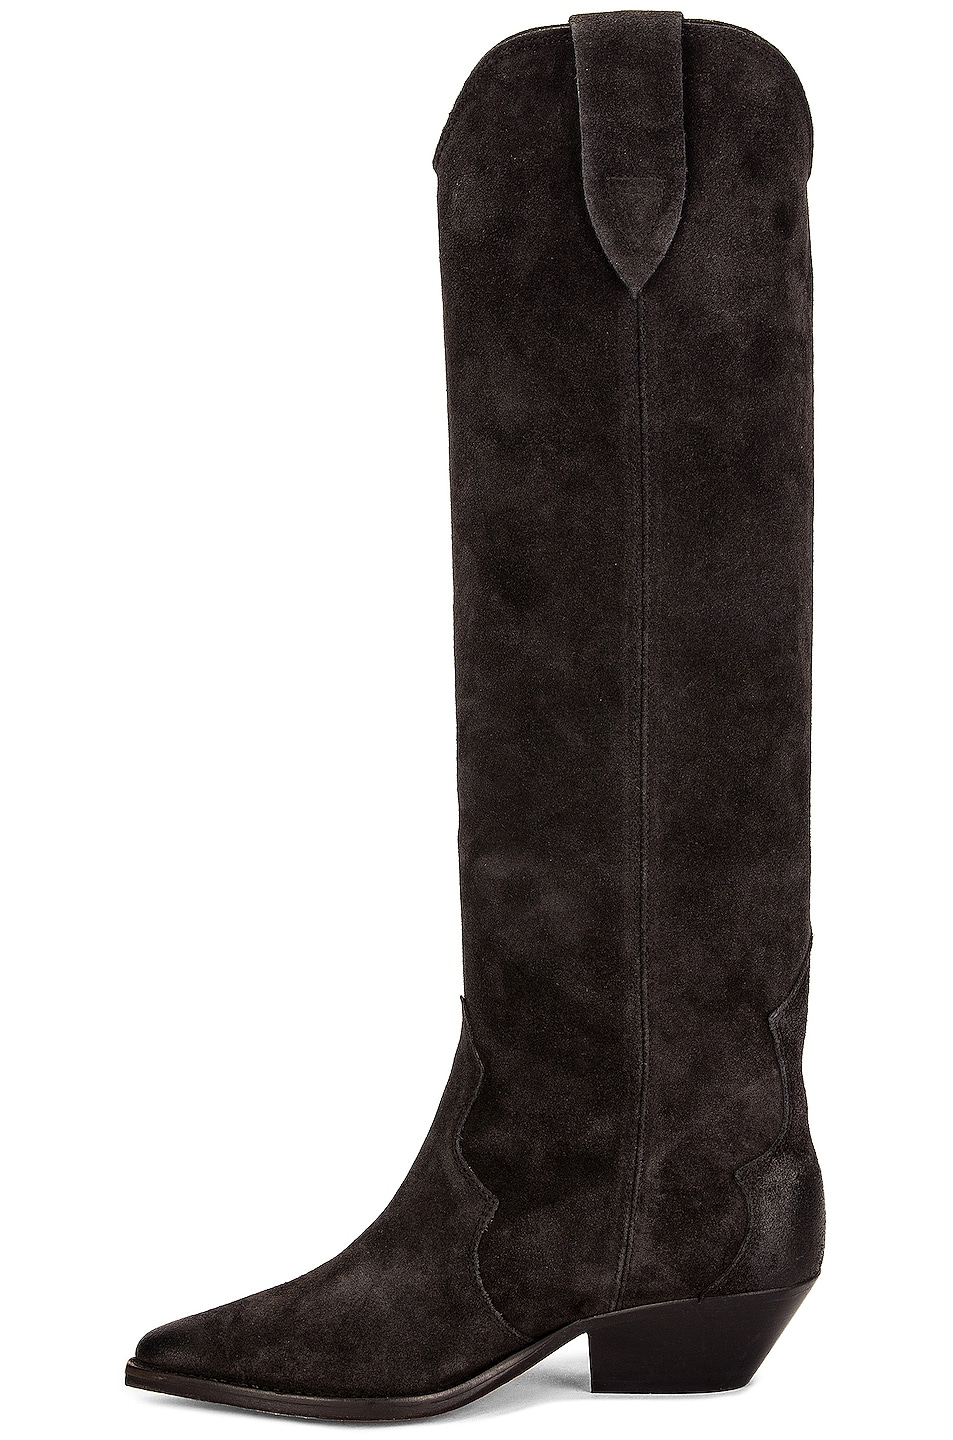 Image 5 of Isabel Marant Denvee Suede Boot in Faded Black